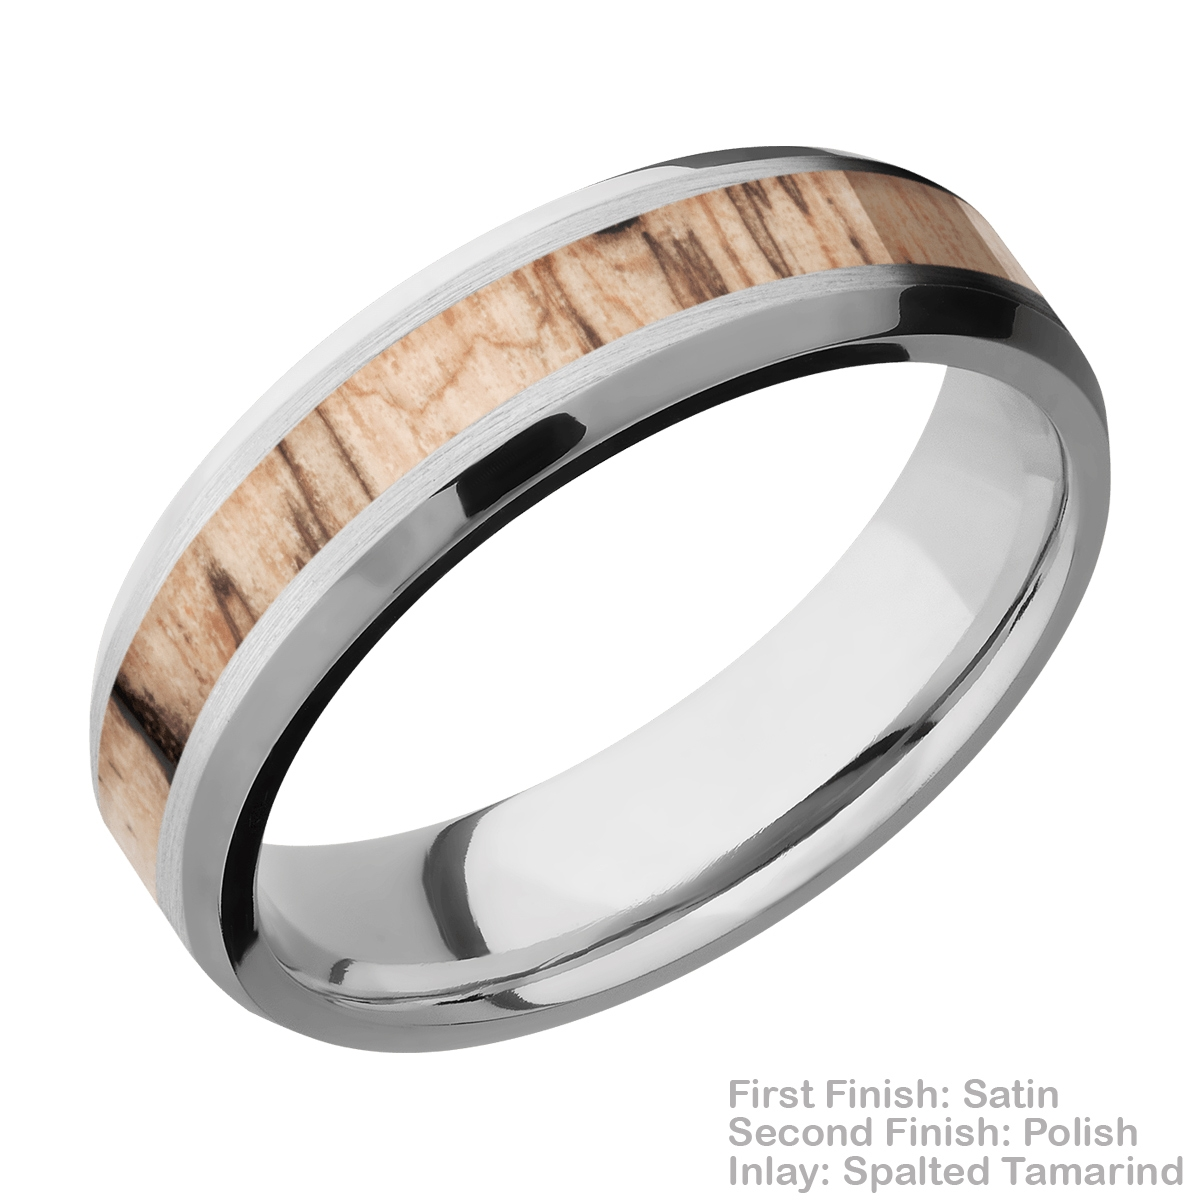 Lashbrook CC6B13(NS)/HARDWOOD Cobalt Chrome Wedding Ring or Band Alternative View 3